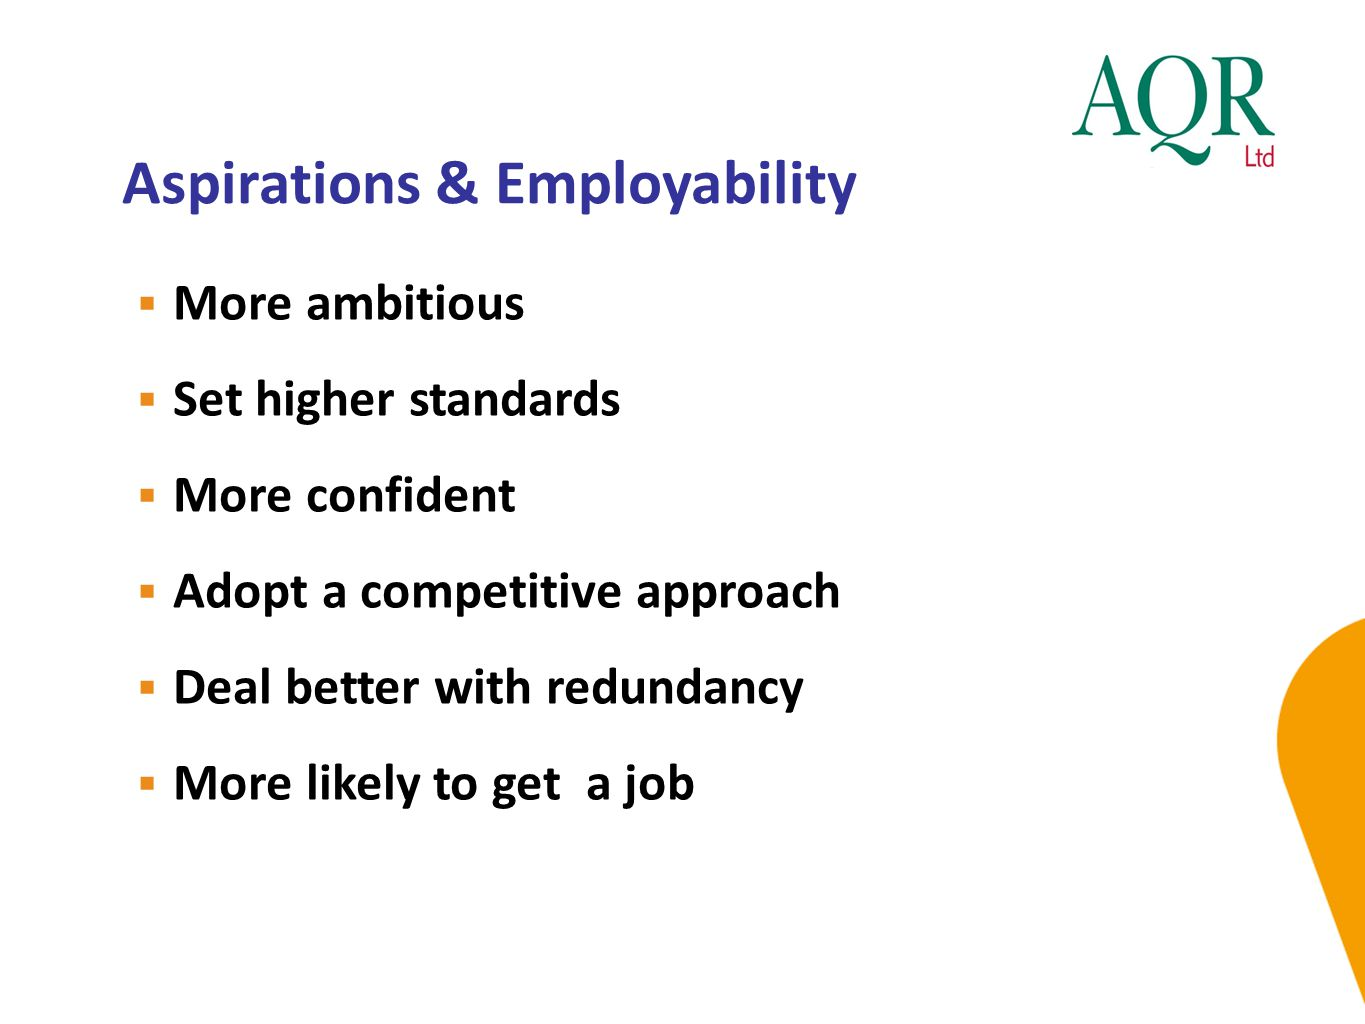 Aspirations & Employability